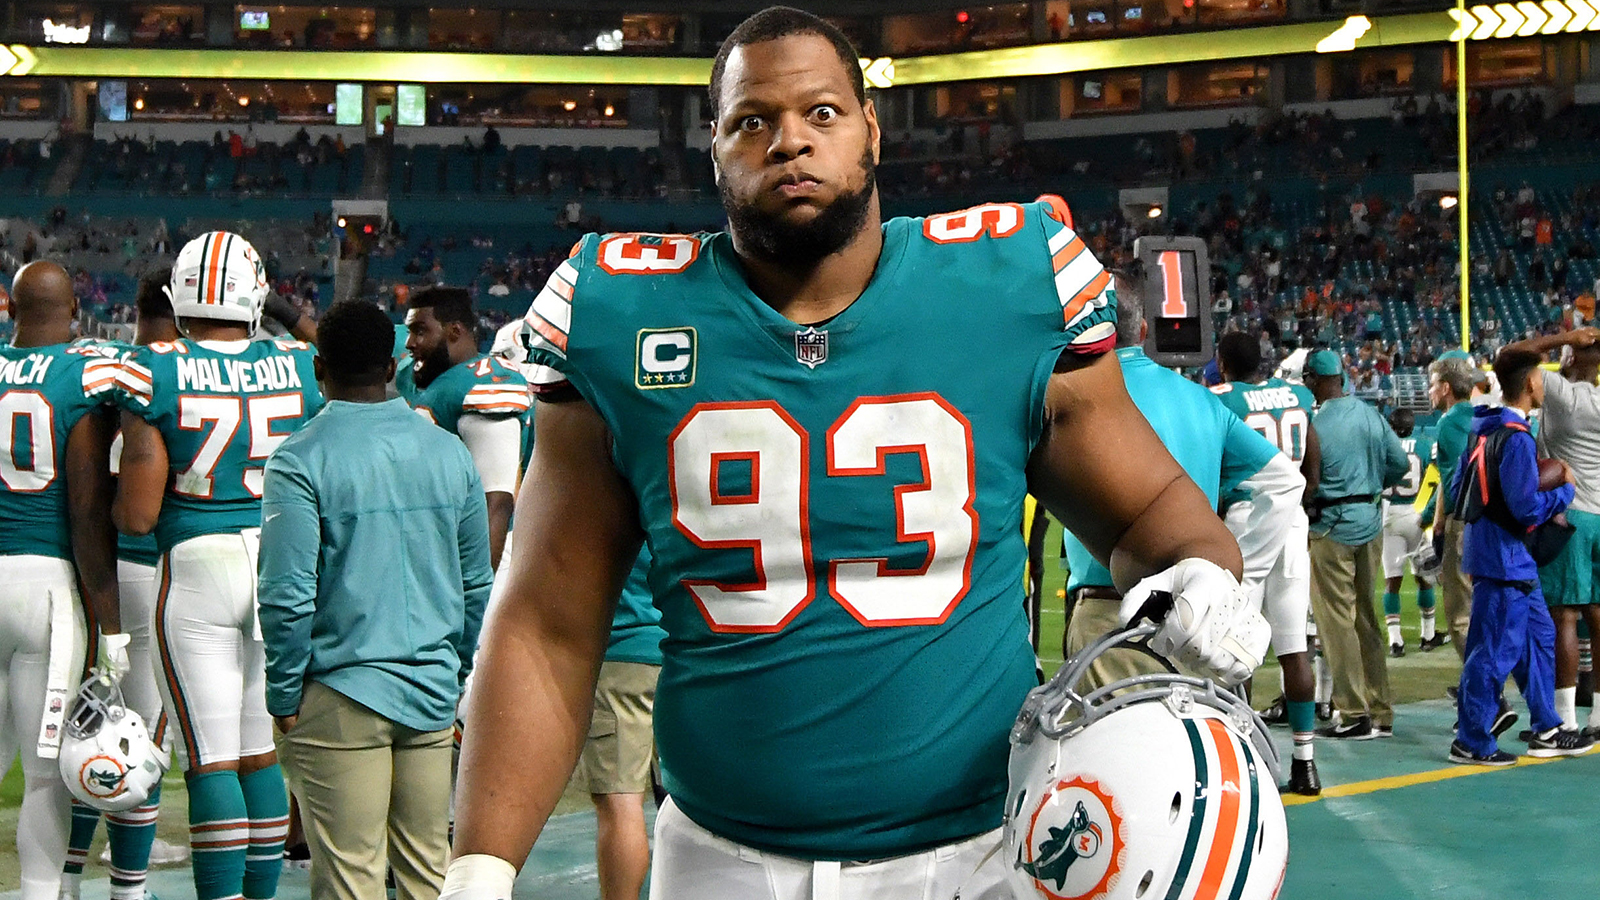 Dolphins may release Ndamukong Suh unless he agrees to restructured contract